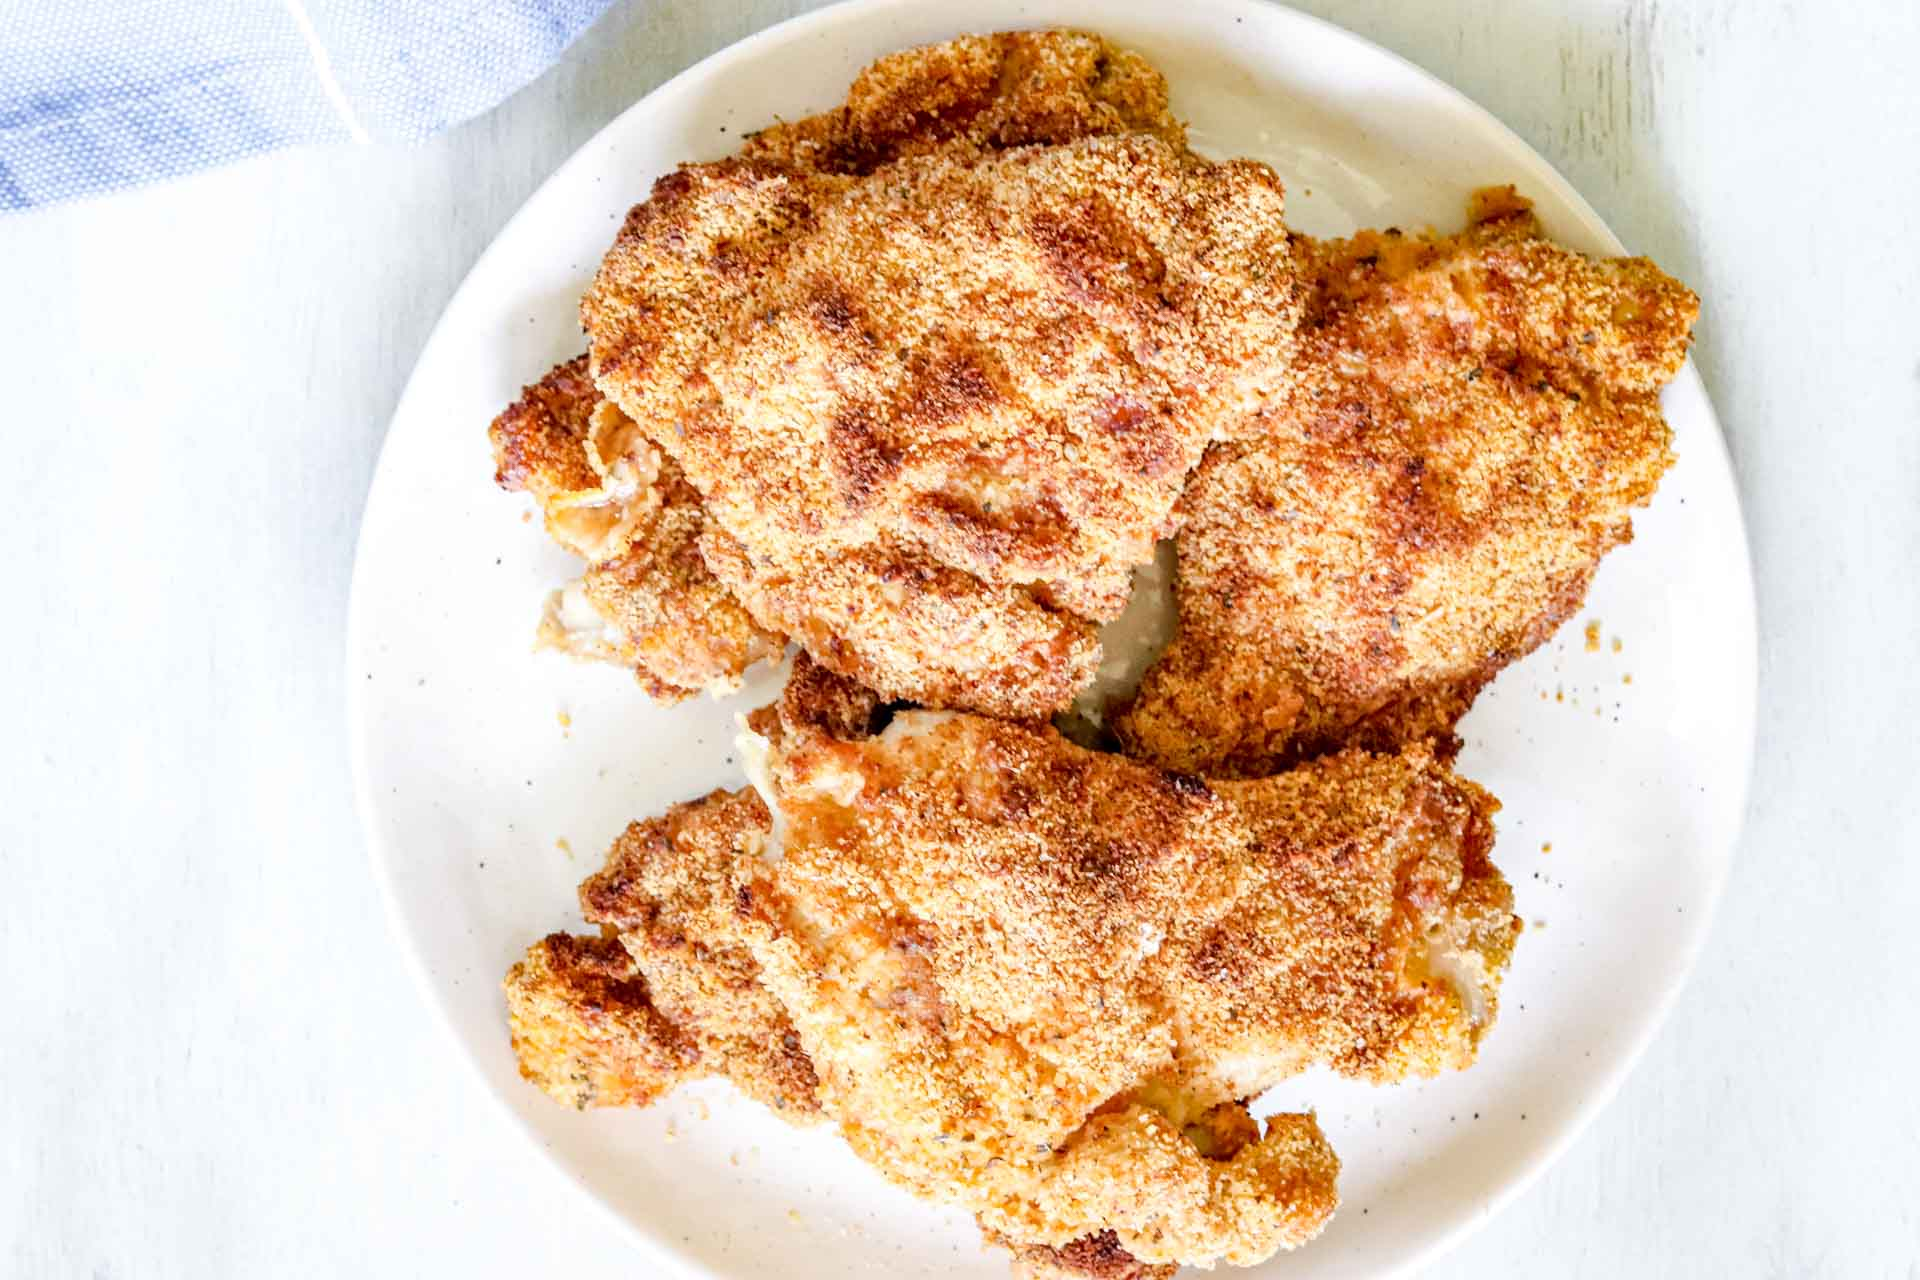 Image of Whole30 Air-fryer 5 chicken thighs on a round white plate. https://www.atwistedplate.com/whole30-air-fryer-chicken-thighs/